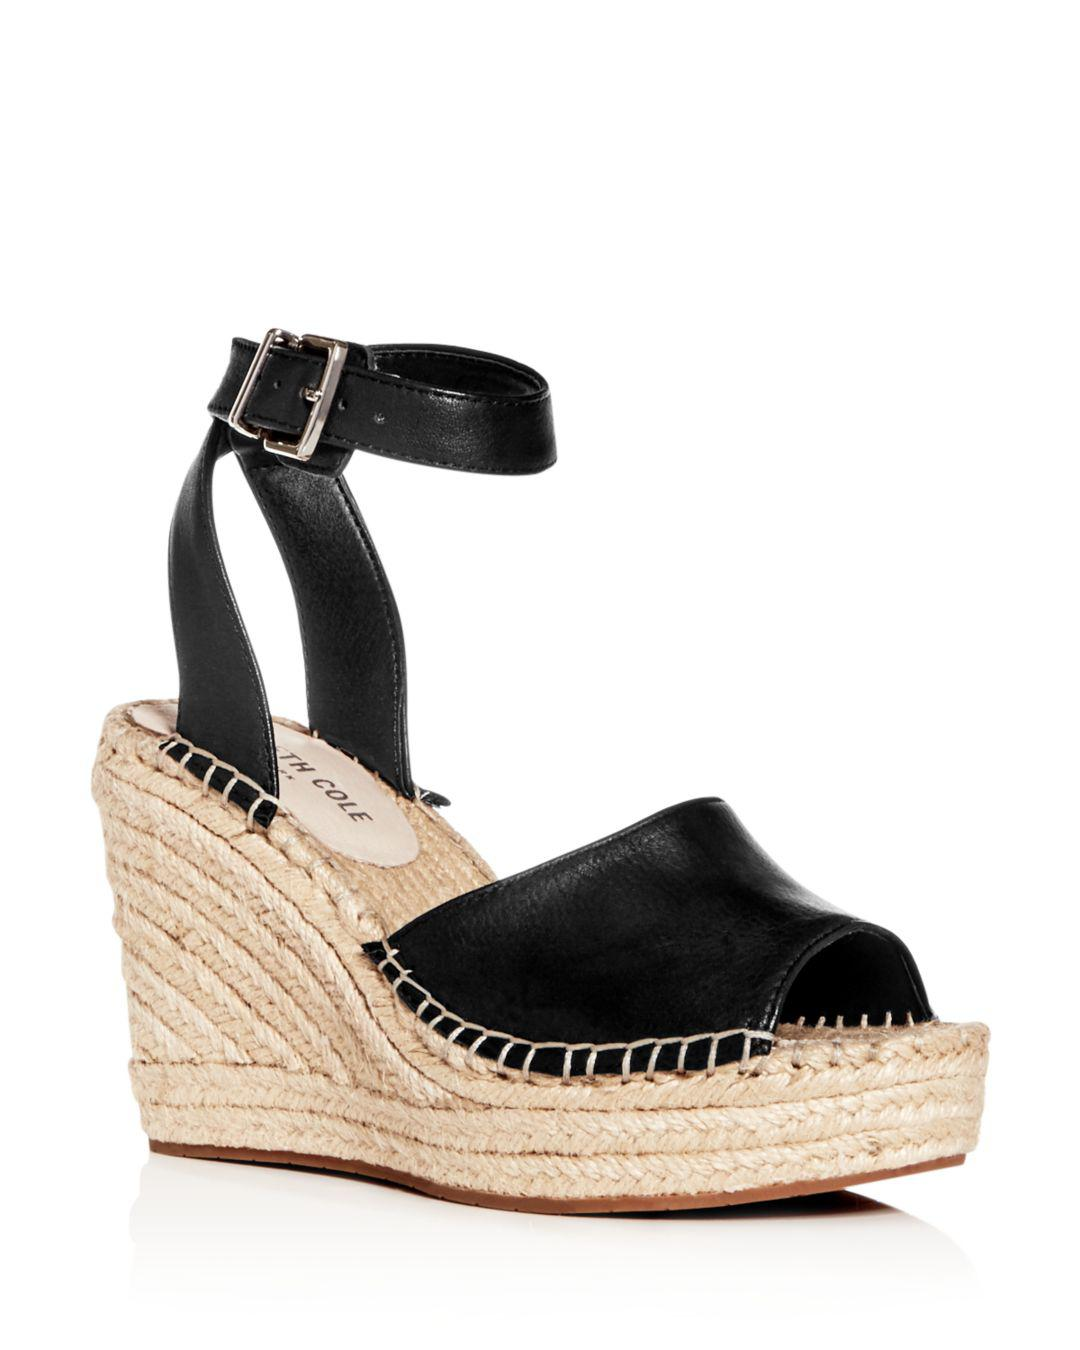 a956bb5d37b Lyst - Kenneth Cole Women s Olivia Espadrille Wedge Sandals in Black ...